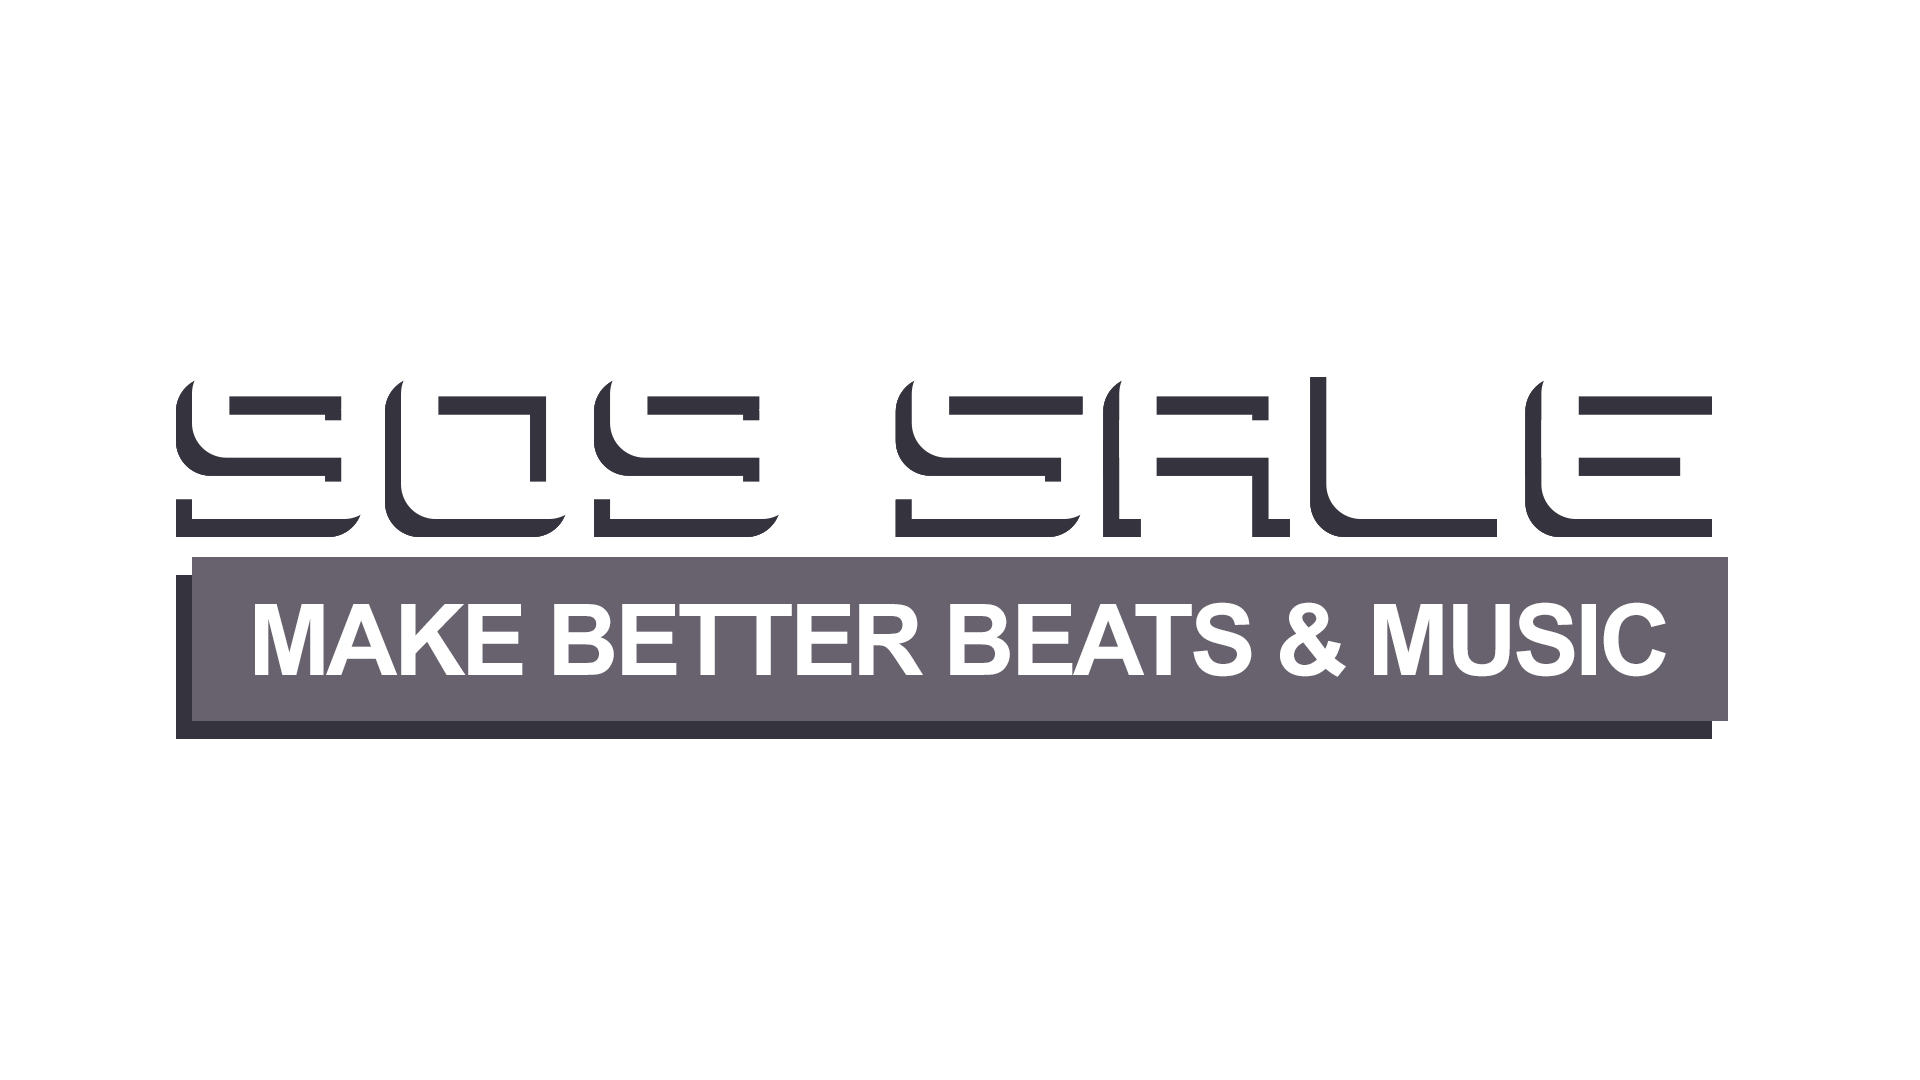 909 Day Sale